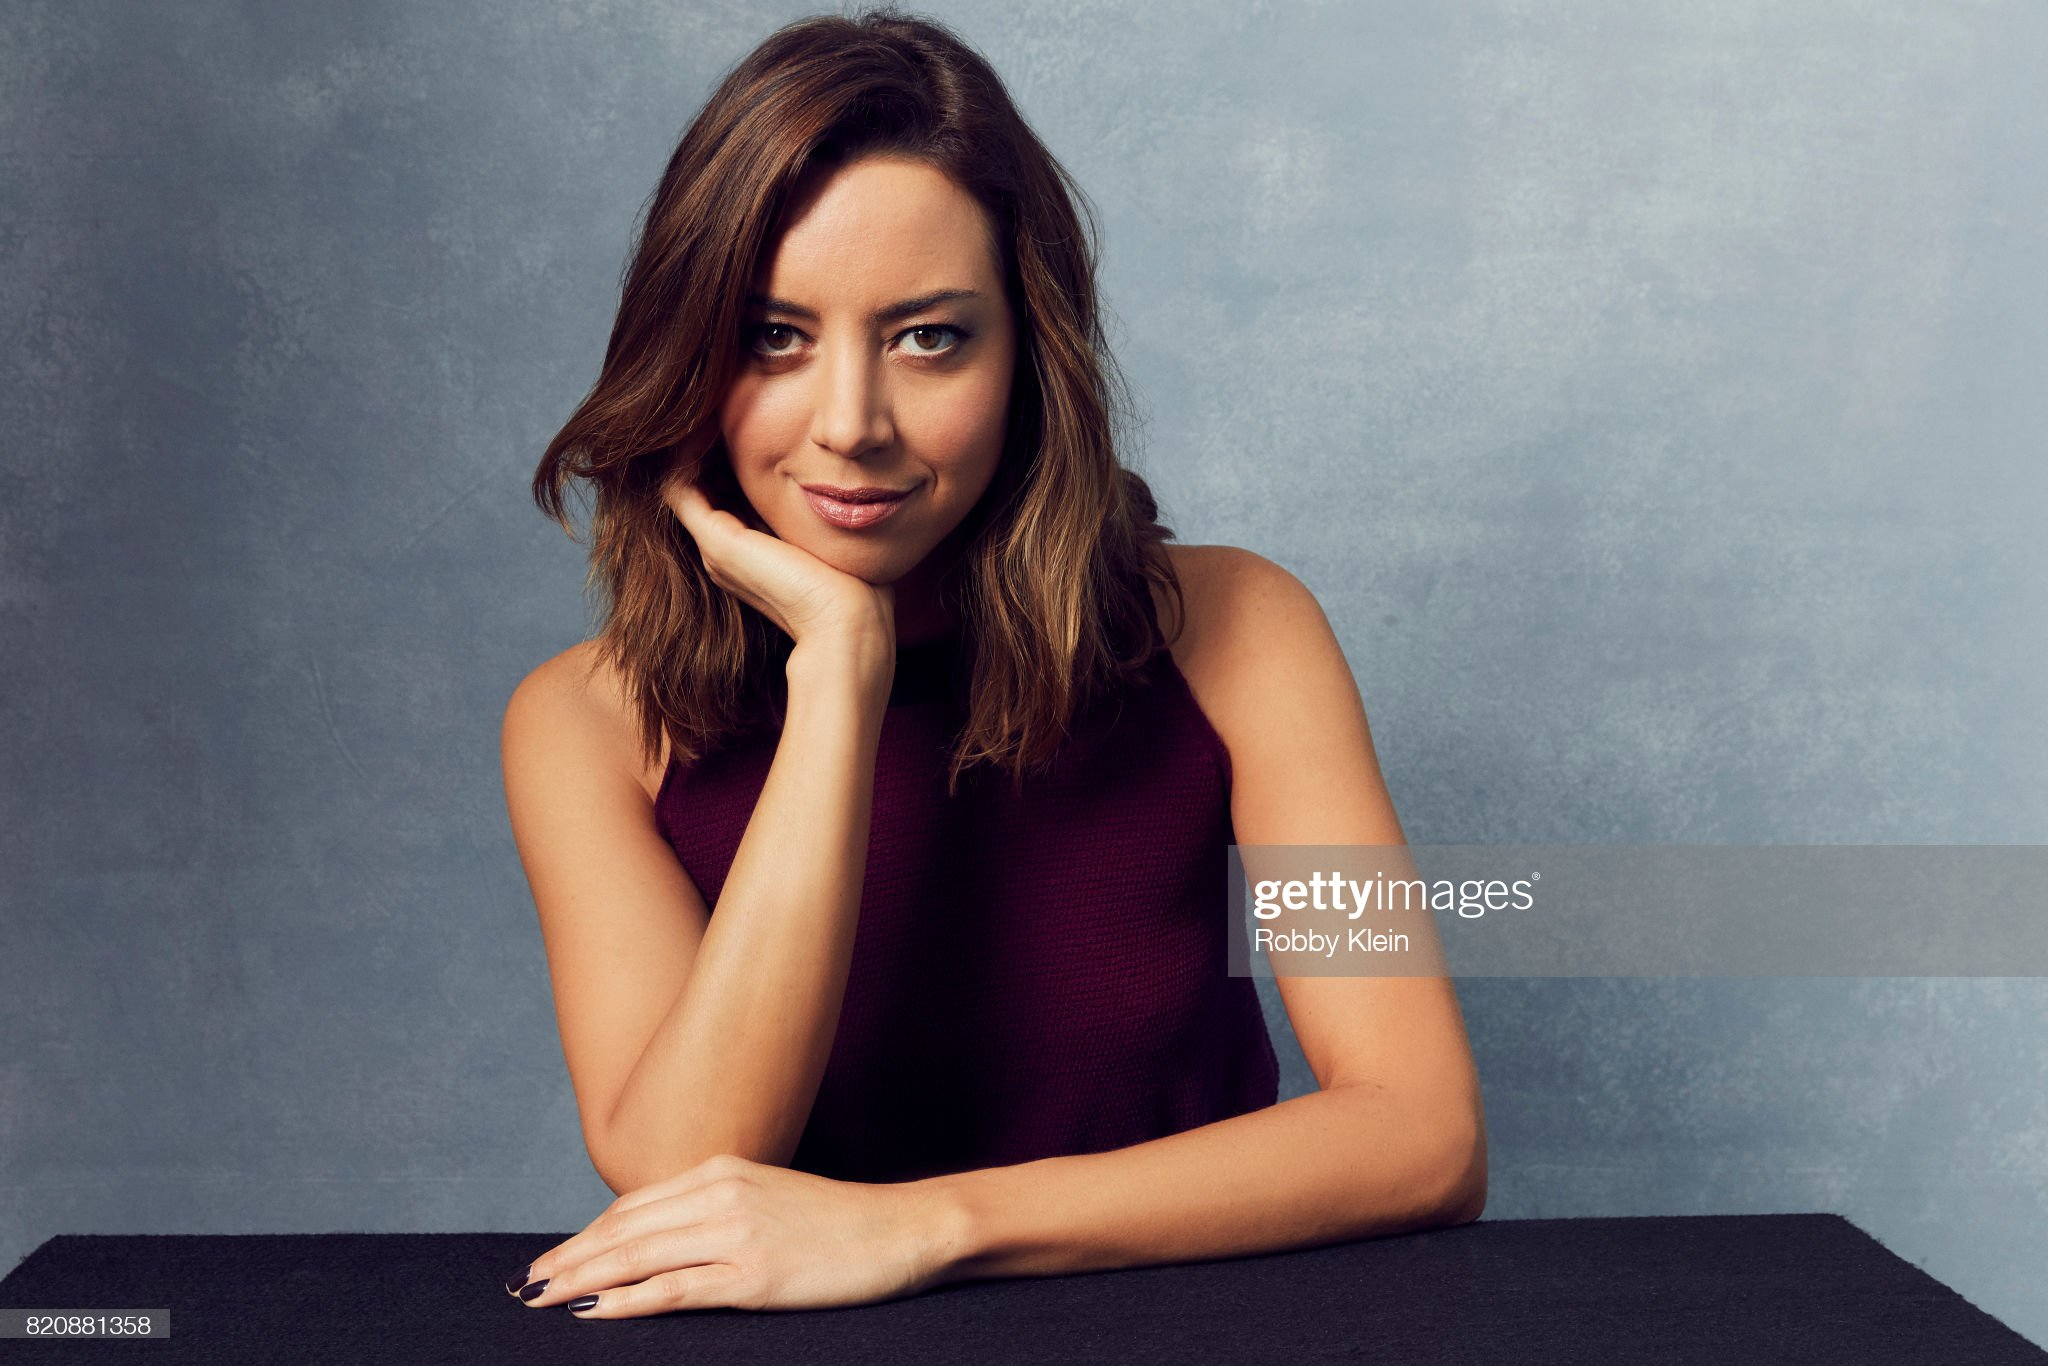 Who has Aubrey Plaza married?